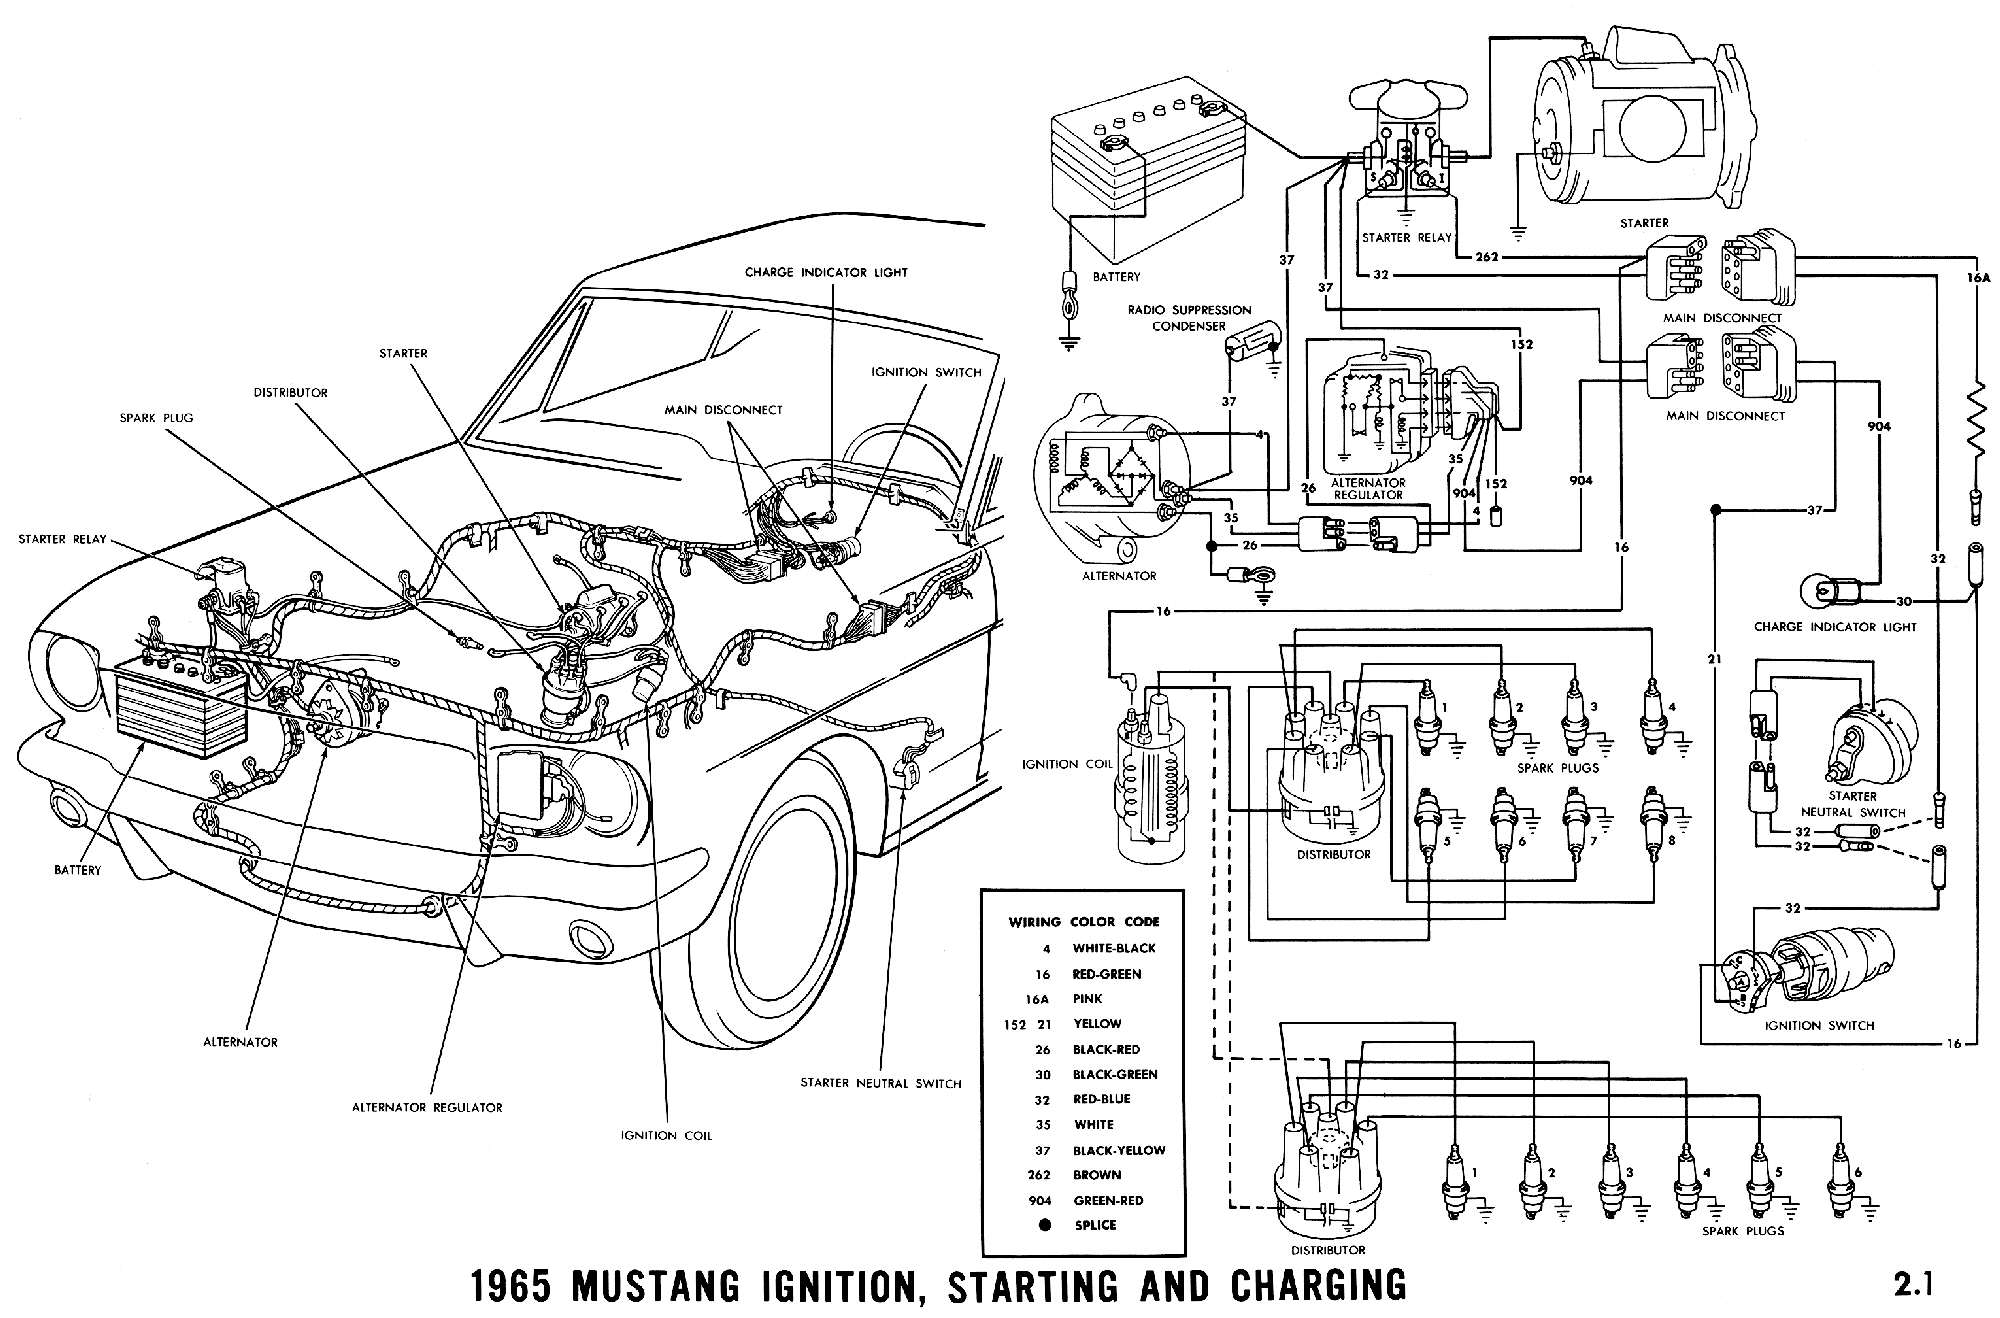 1965c 1965 mustang wiring diagrams average joe restoration 1966 mustang ignition switch wiring diagram at n-0.co